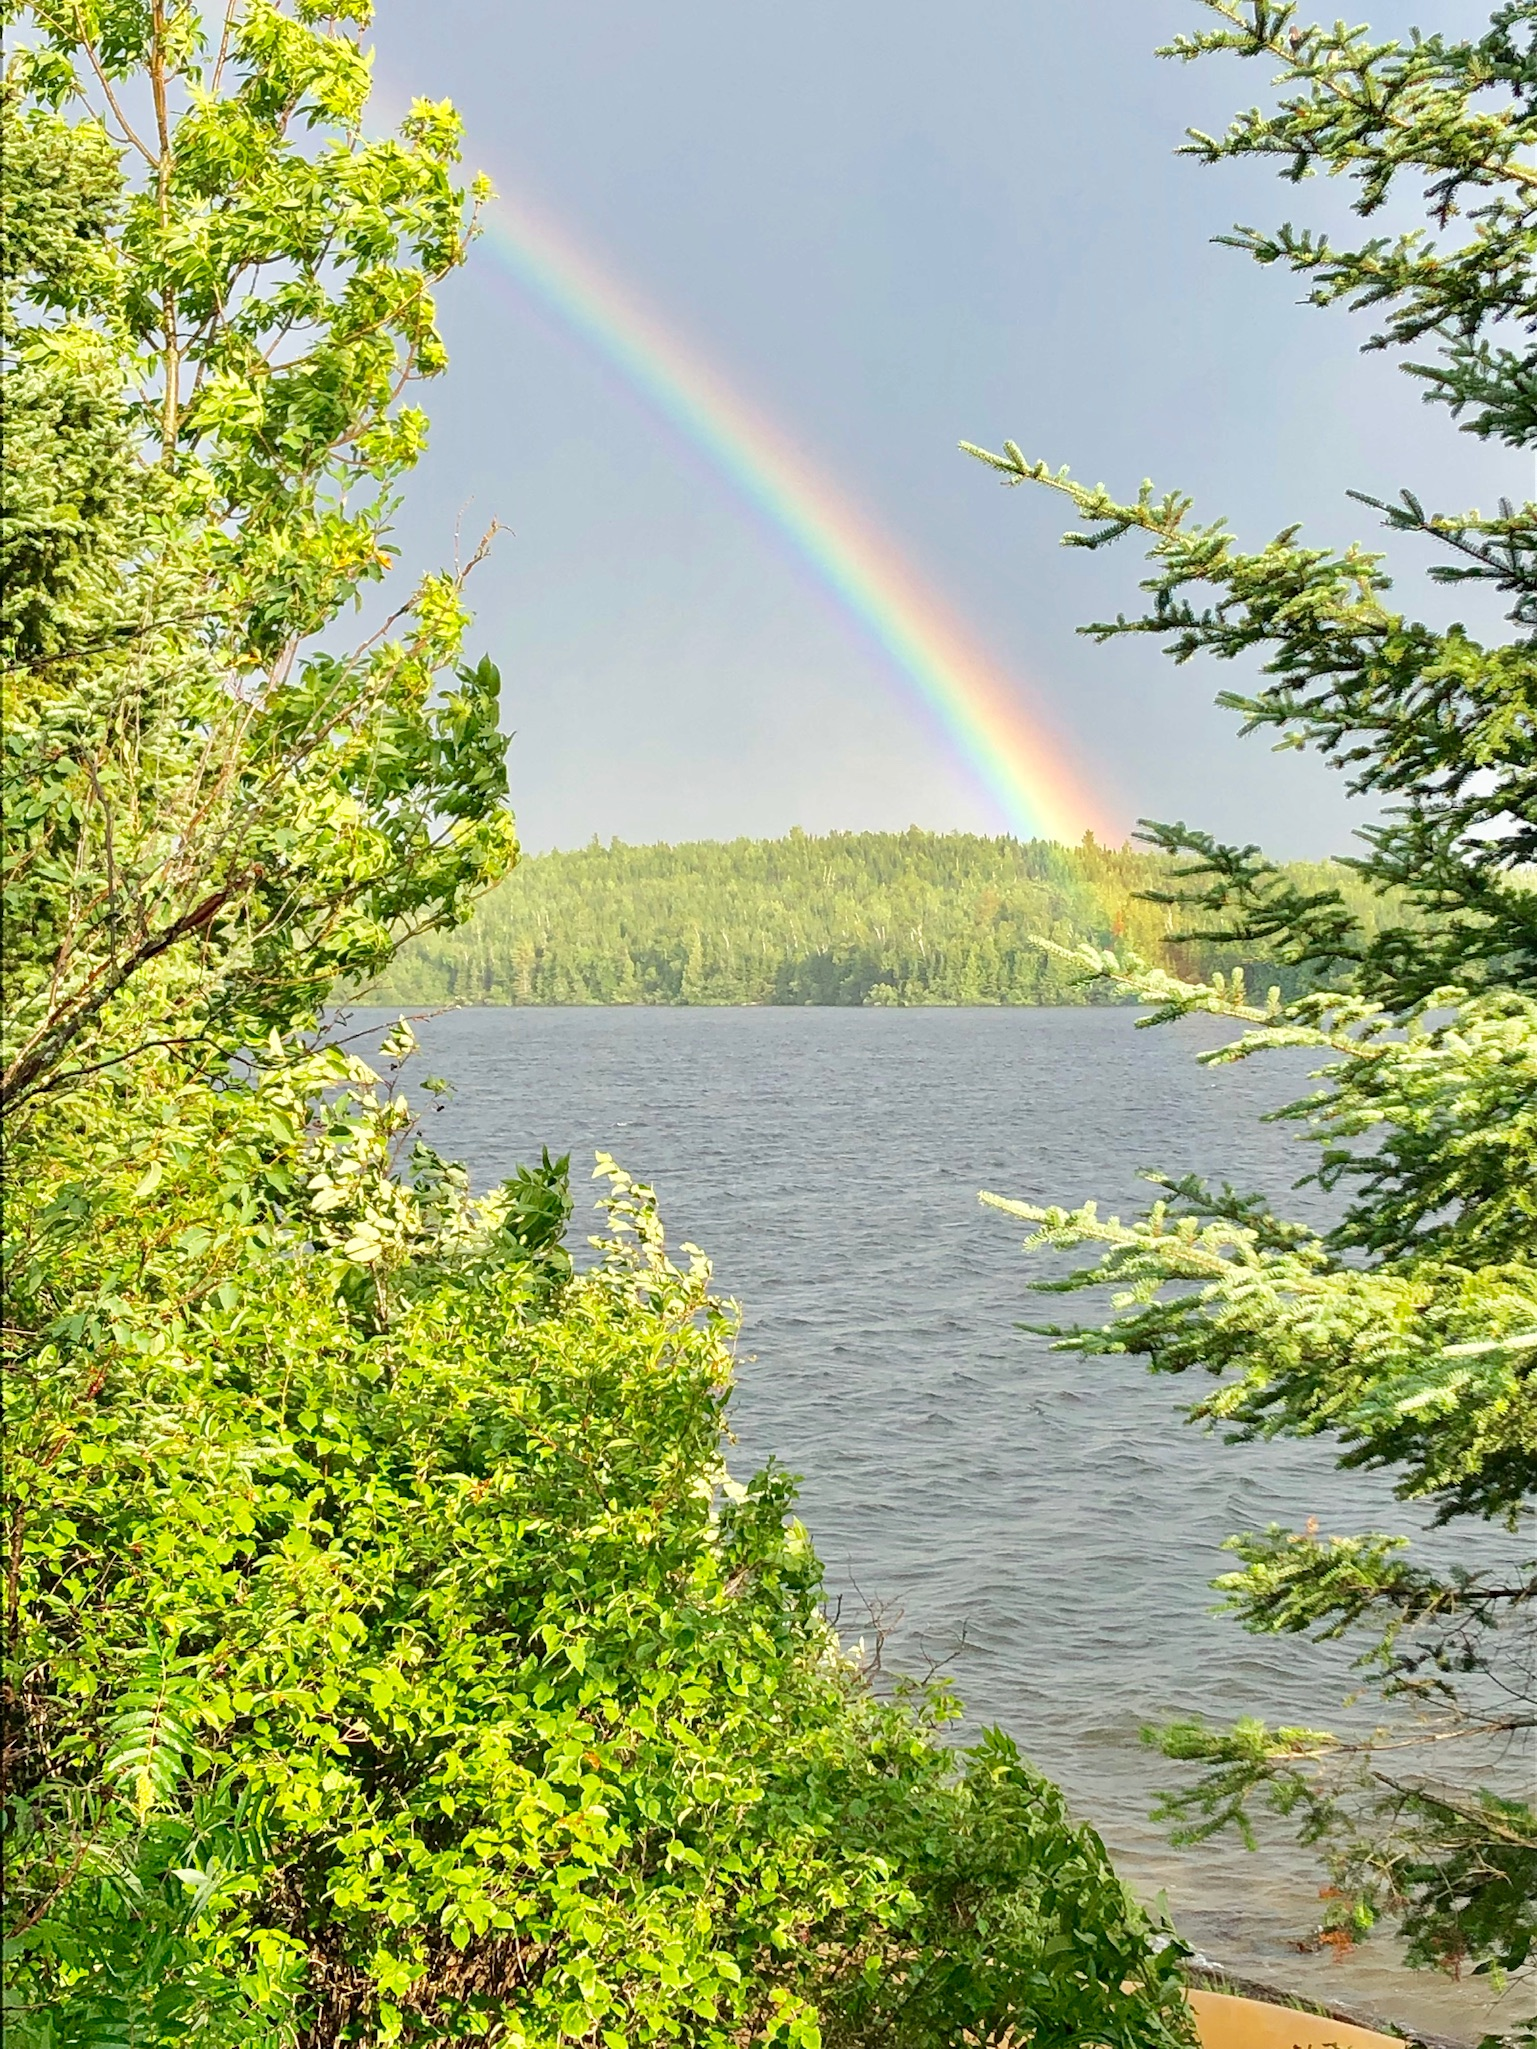 Rainbow on Day 4, Friday, July 26th as seen by Crew M from Ensign Lake looking to the southeast